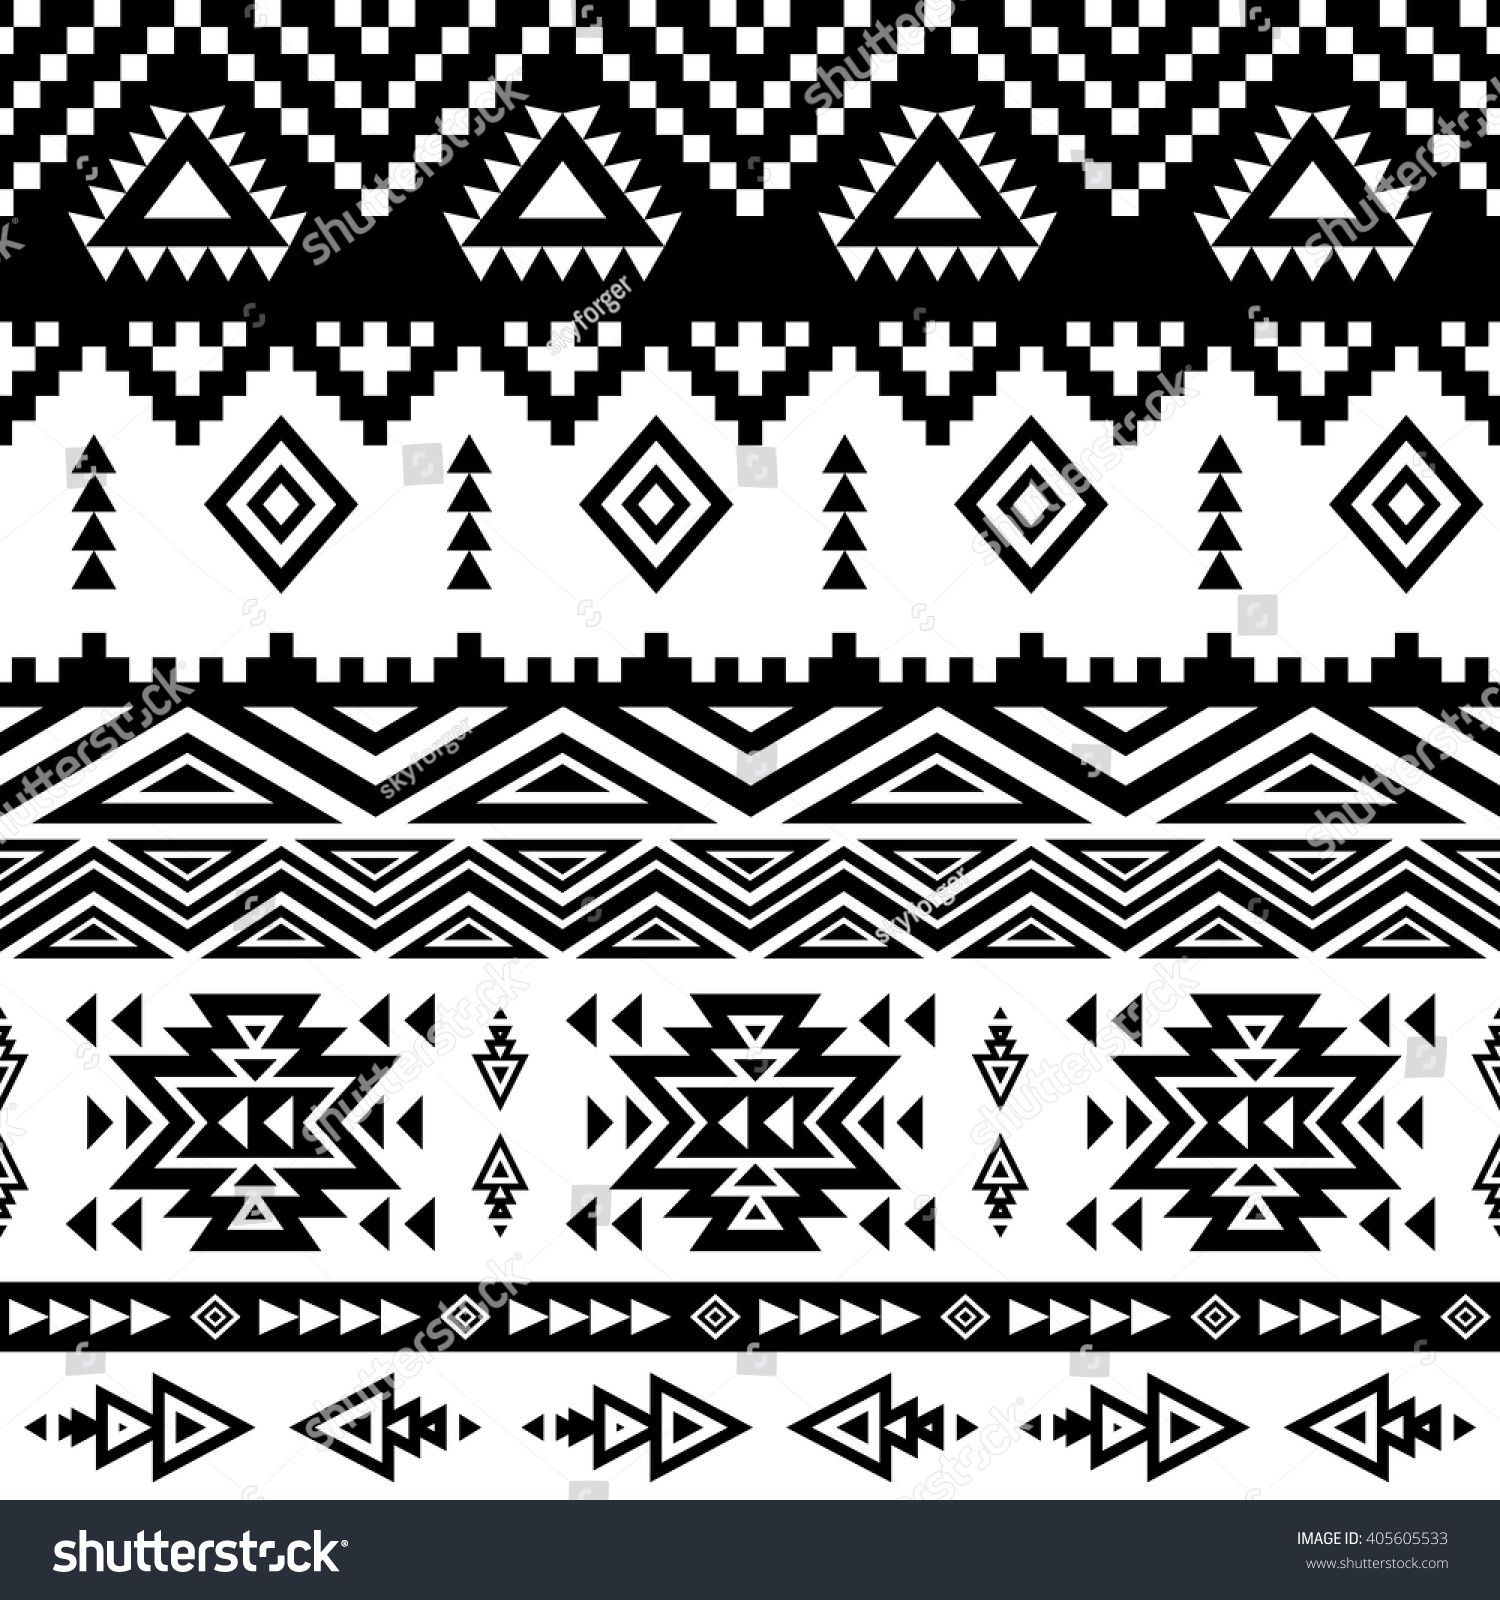 Background geometric mexican patterns seamless vector zigzag maya - Seamless Ethnic Pattern Background With Geometric Aztec Maya Peru Mexican Tribal